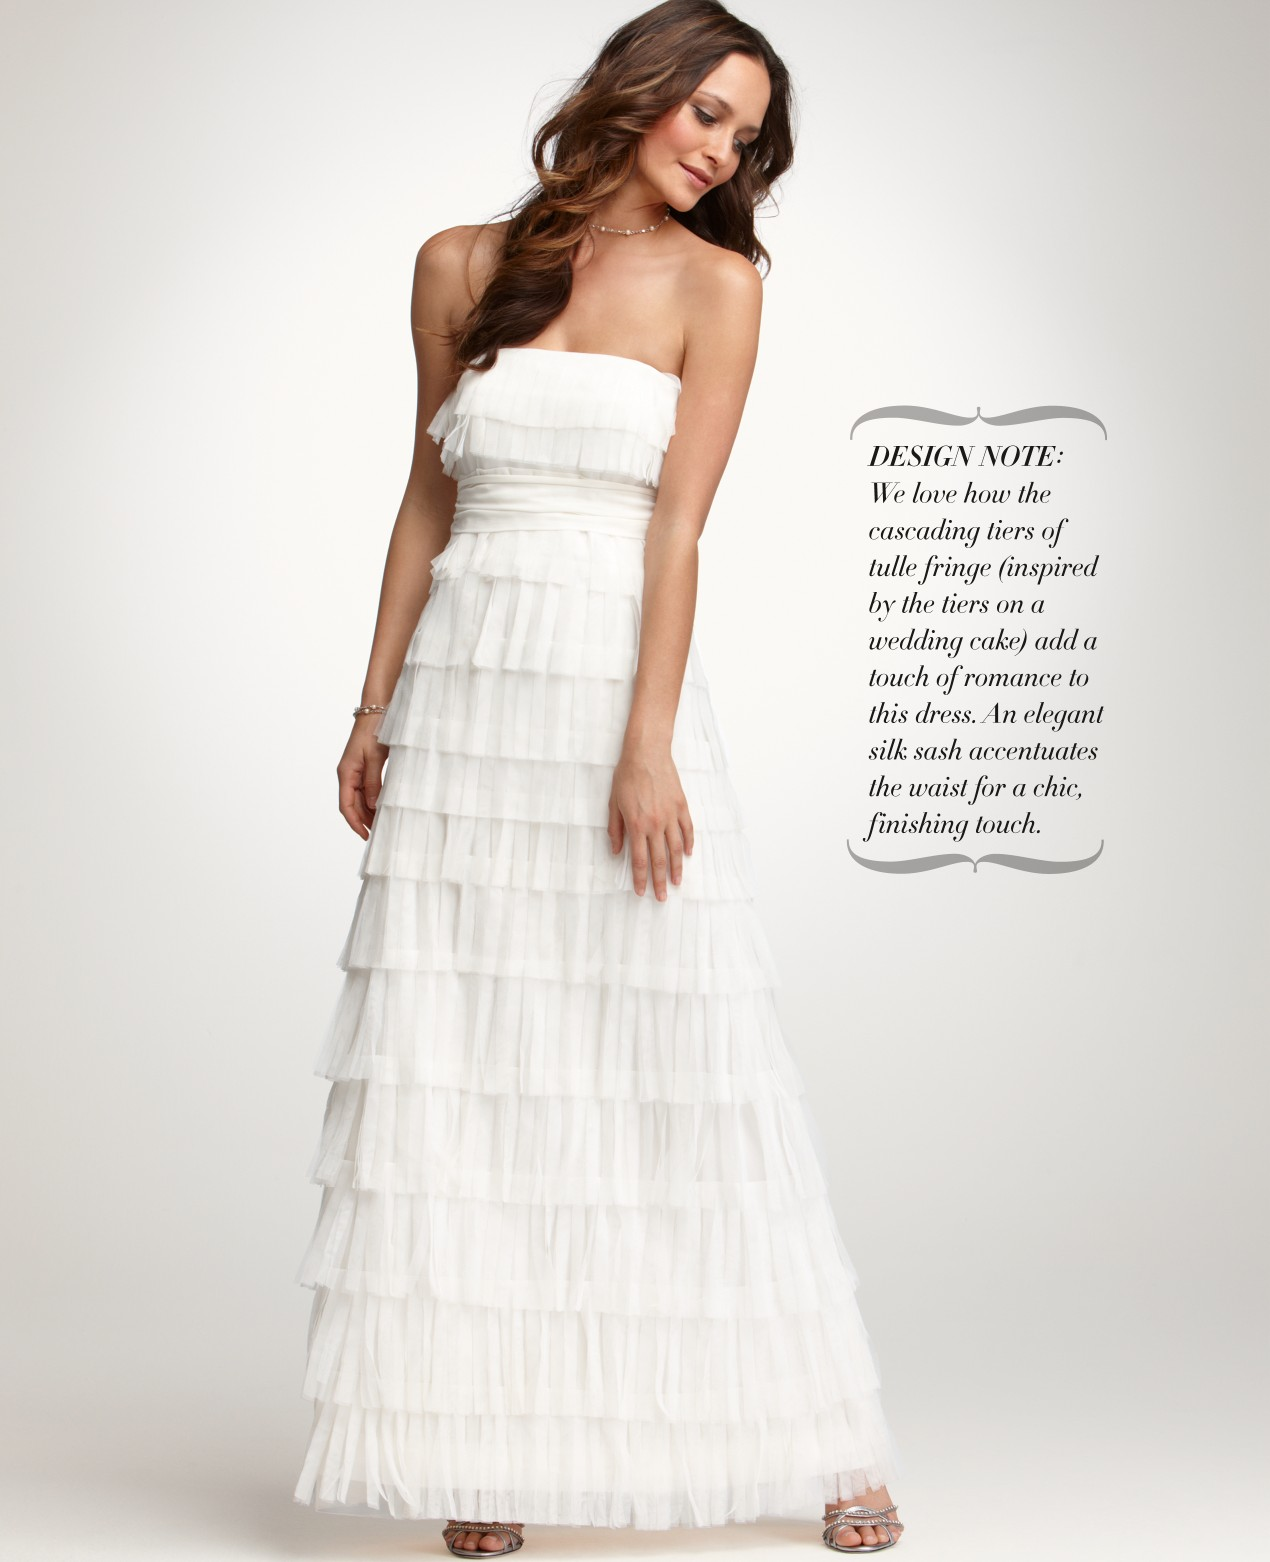 Lyst - Ann taylor Fringe Strapless Wedding Dress in White